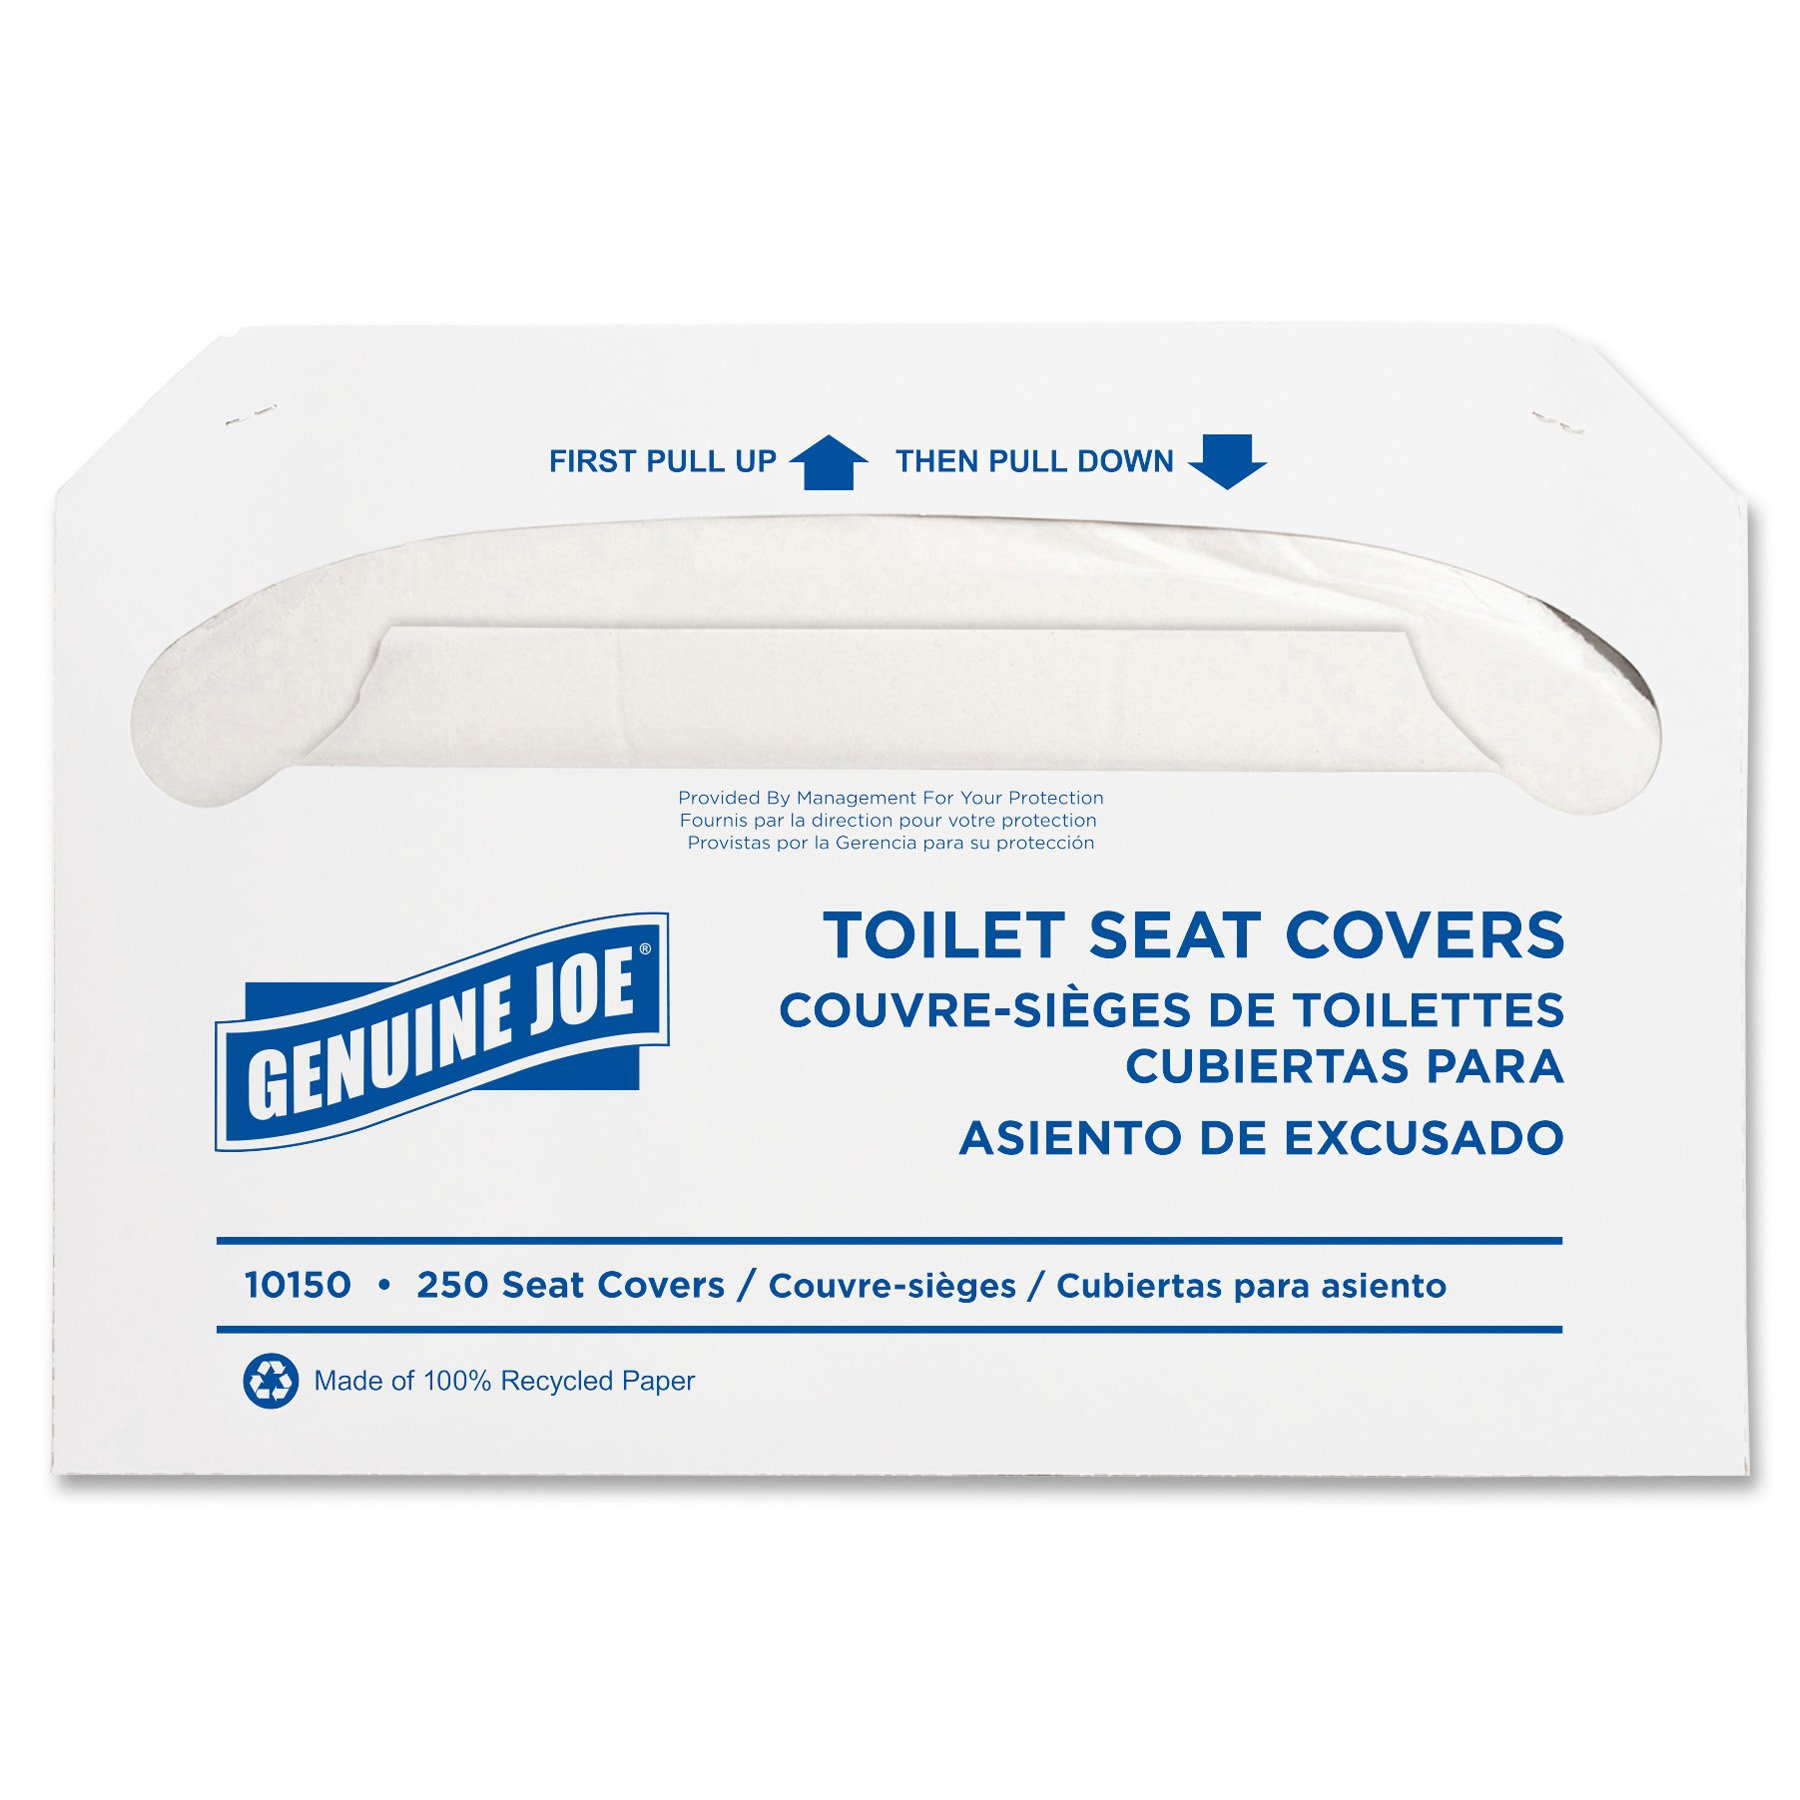 Genuine Joe GJO10150 Recycled Toilet Seat Cover, White (Case of 2500) by Genuine Joe (Image #1)